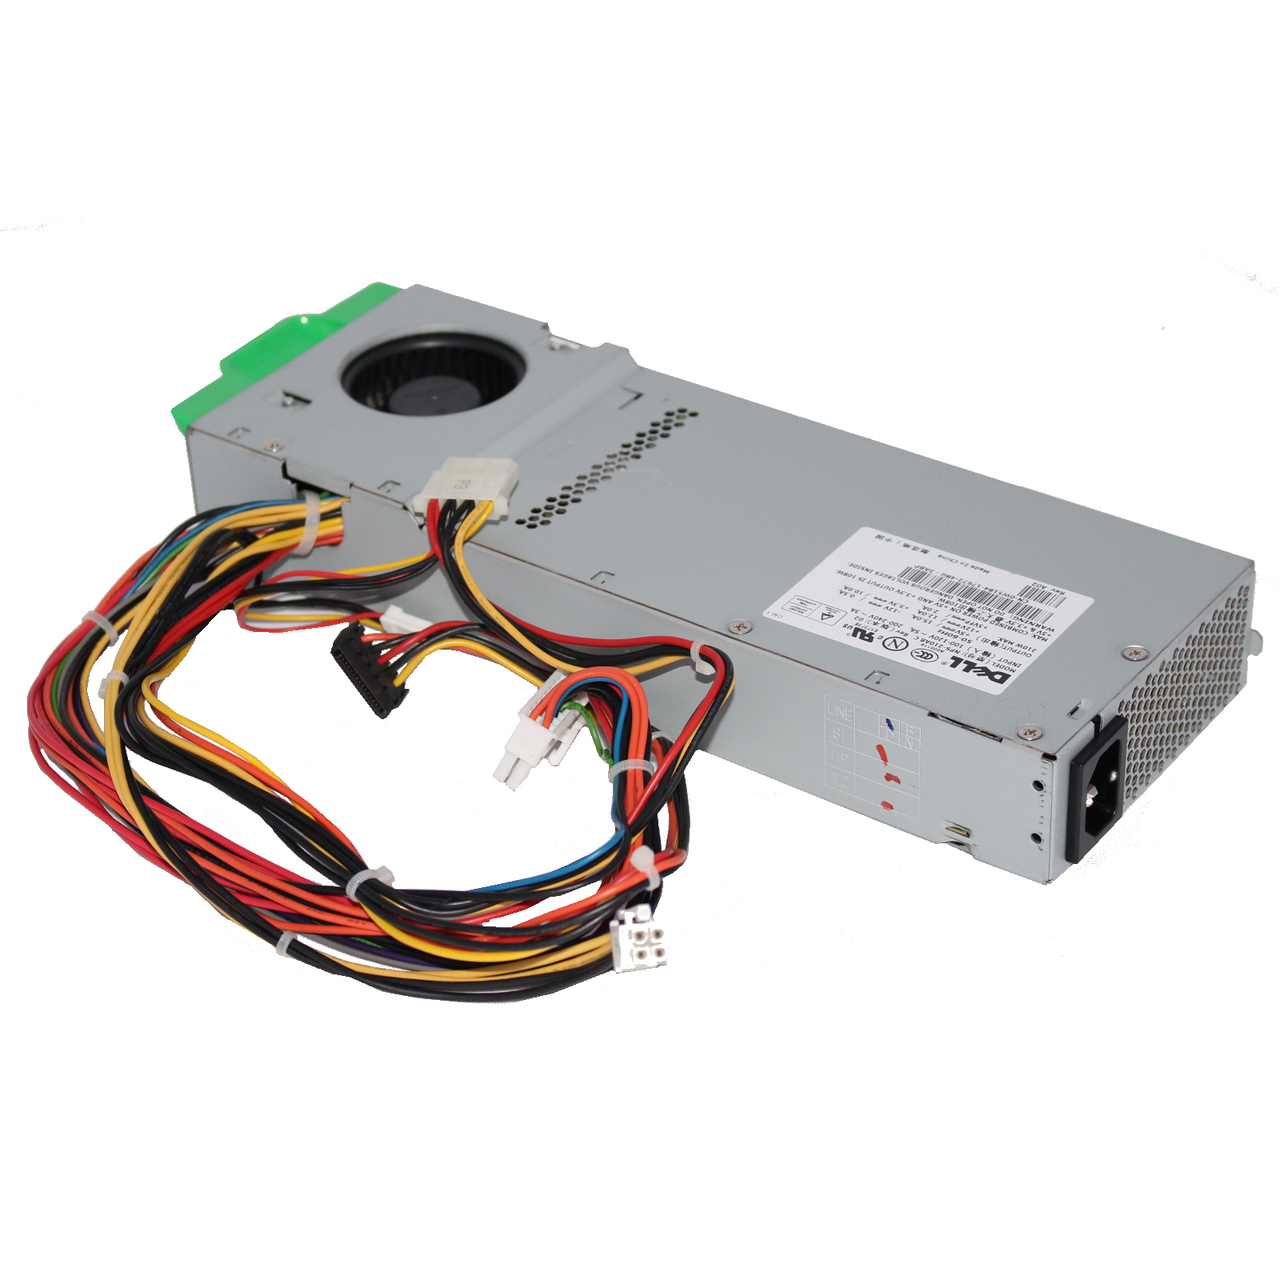 GENUINE DELL 210Watt Power Supply for OptiPlex GX280 Small Desktop (SD) Systems, Compatible Part Numbers: U5425, W5184 Model numbers: HP-U2106F3